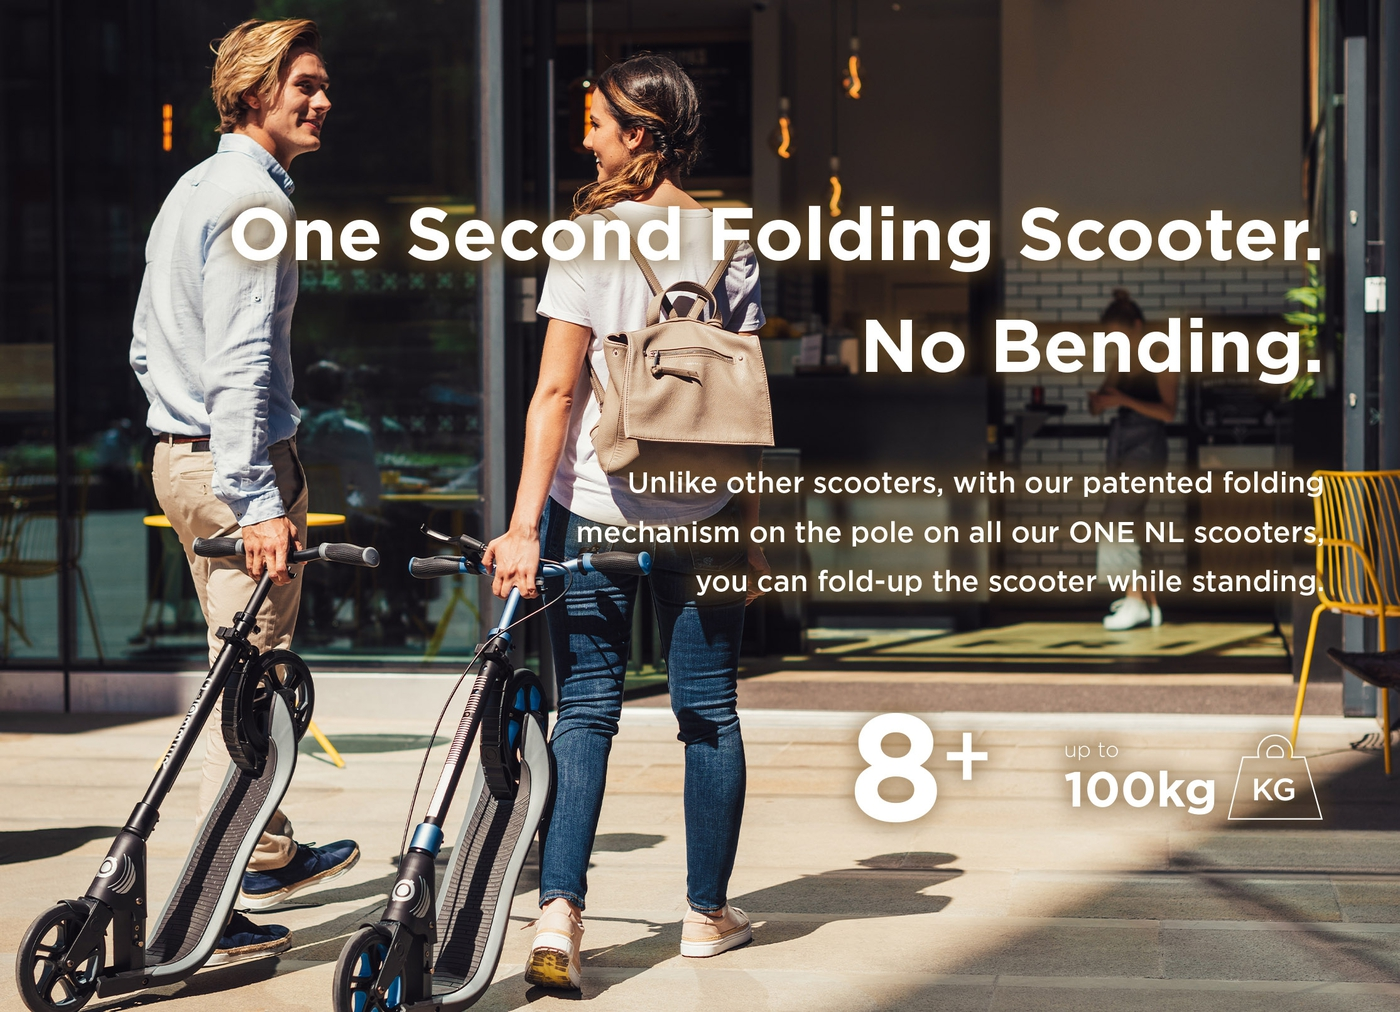 One second folding scooter. No bending required.